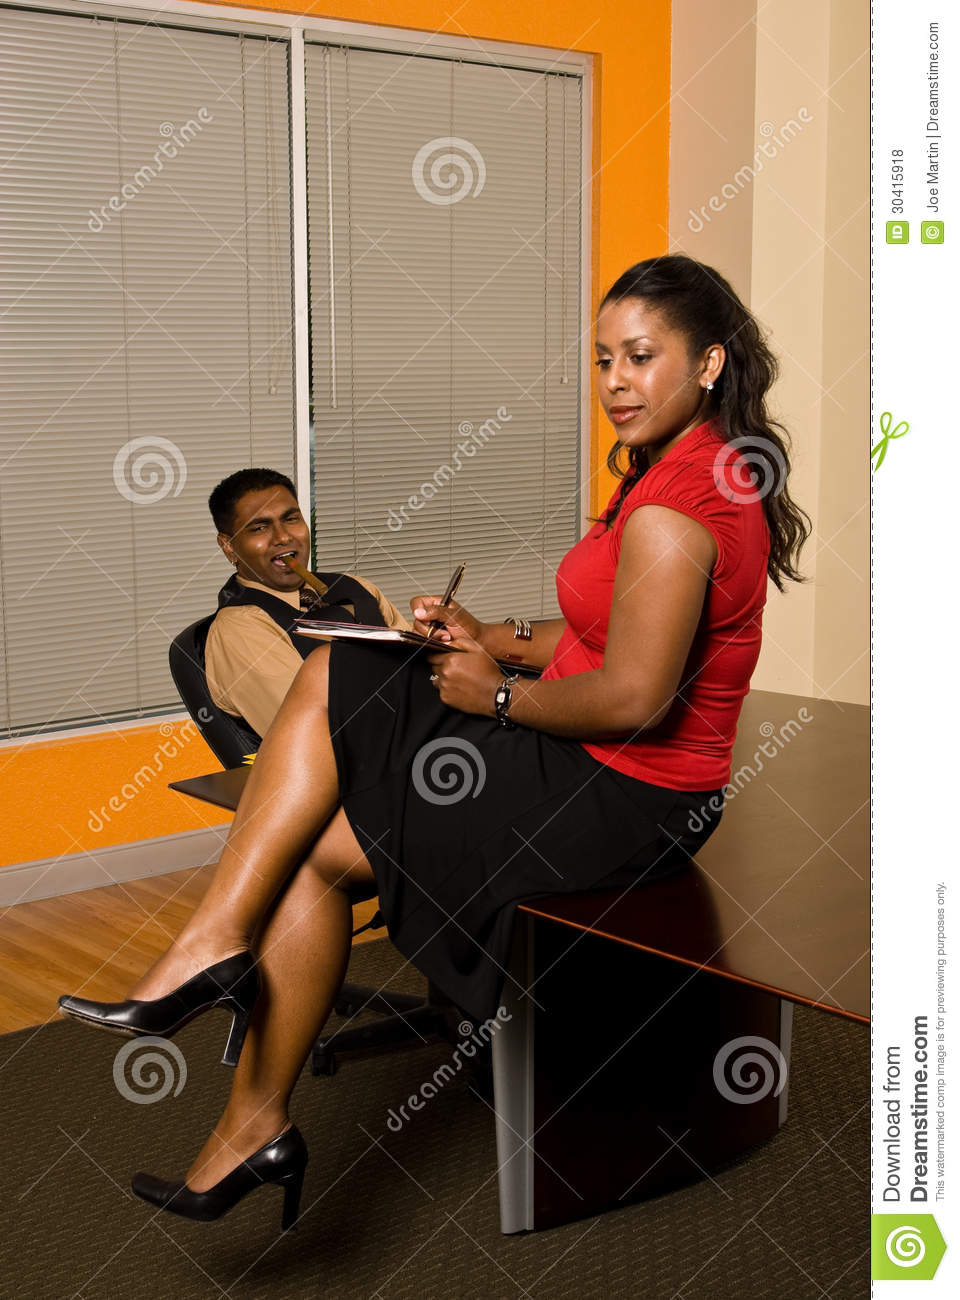 Secretary Taking Notes While Business Man Stares Royalty